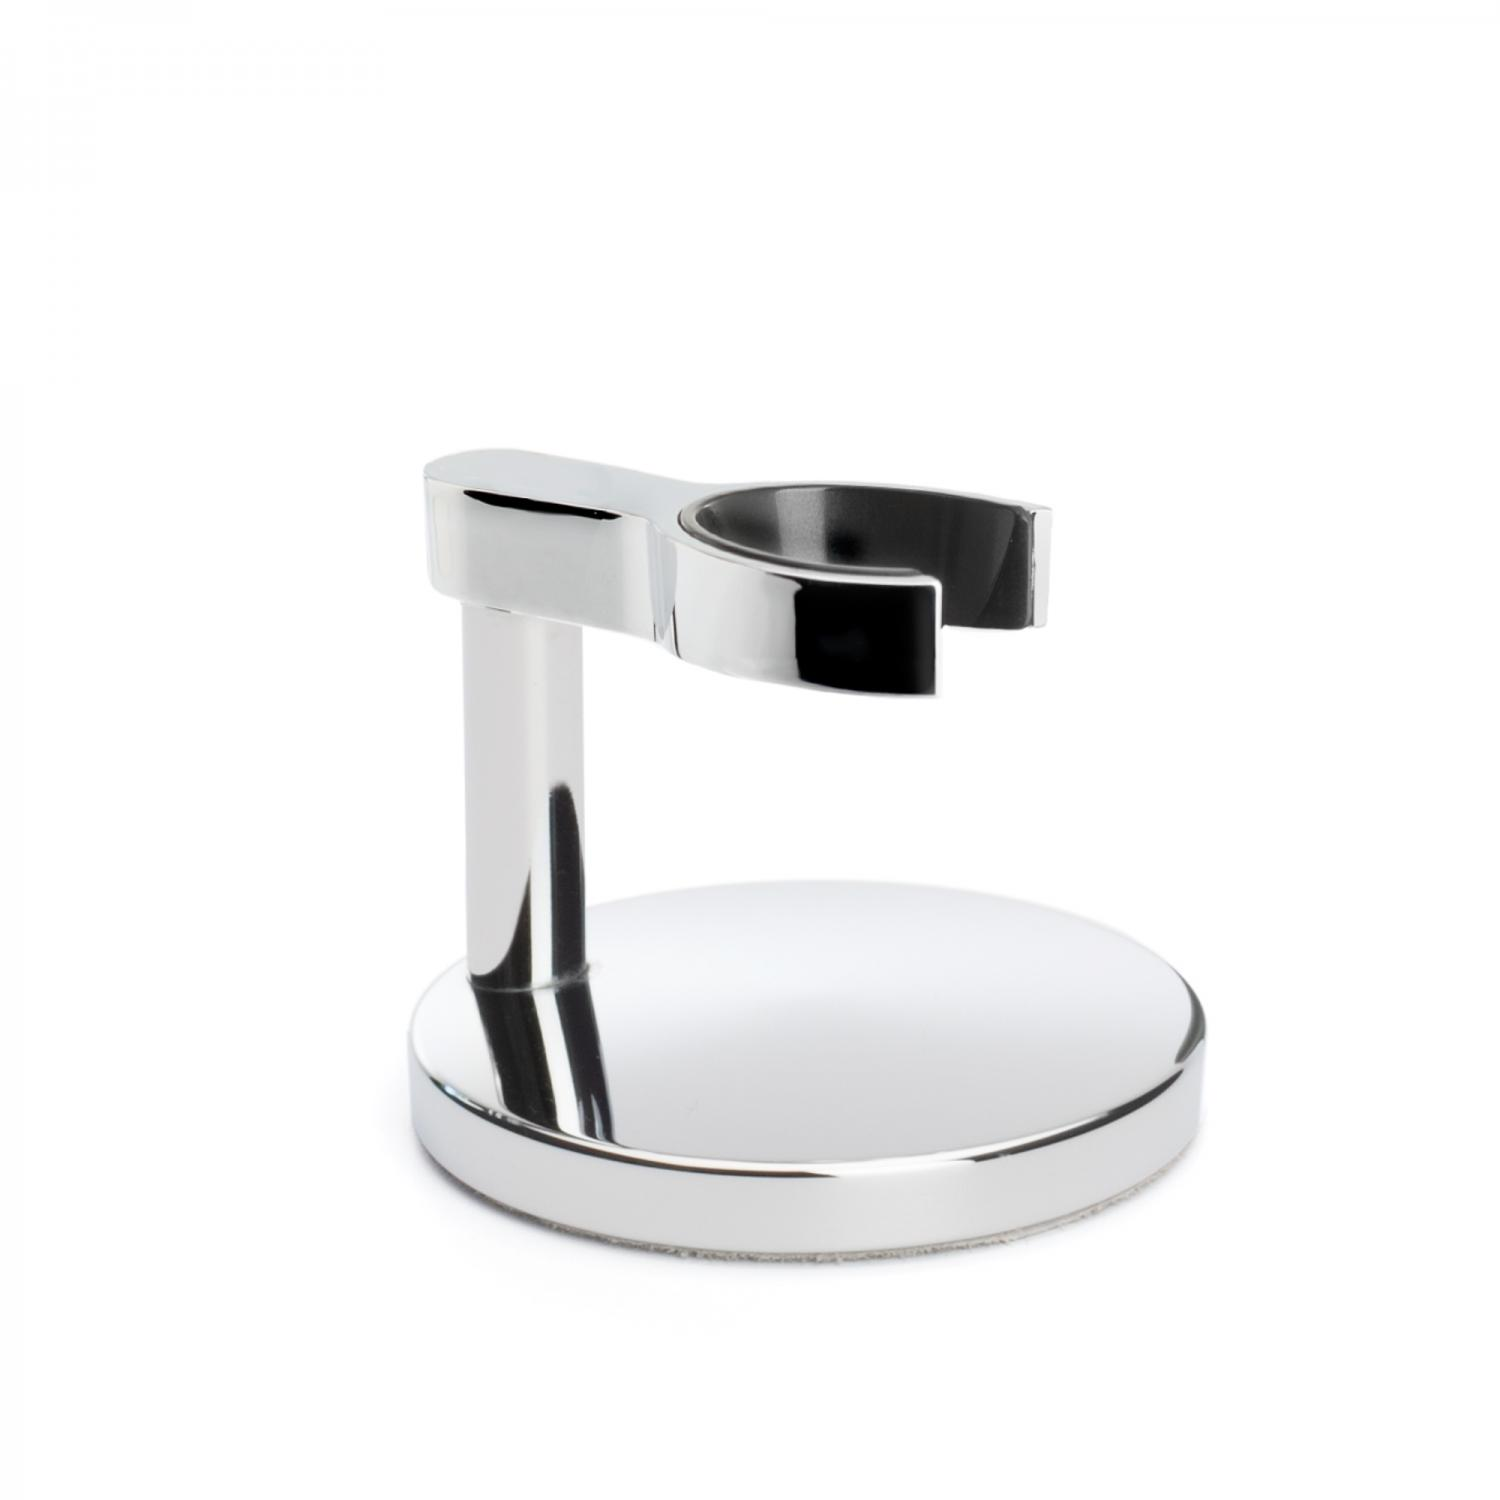 Chrome plated safety razor stand